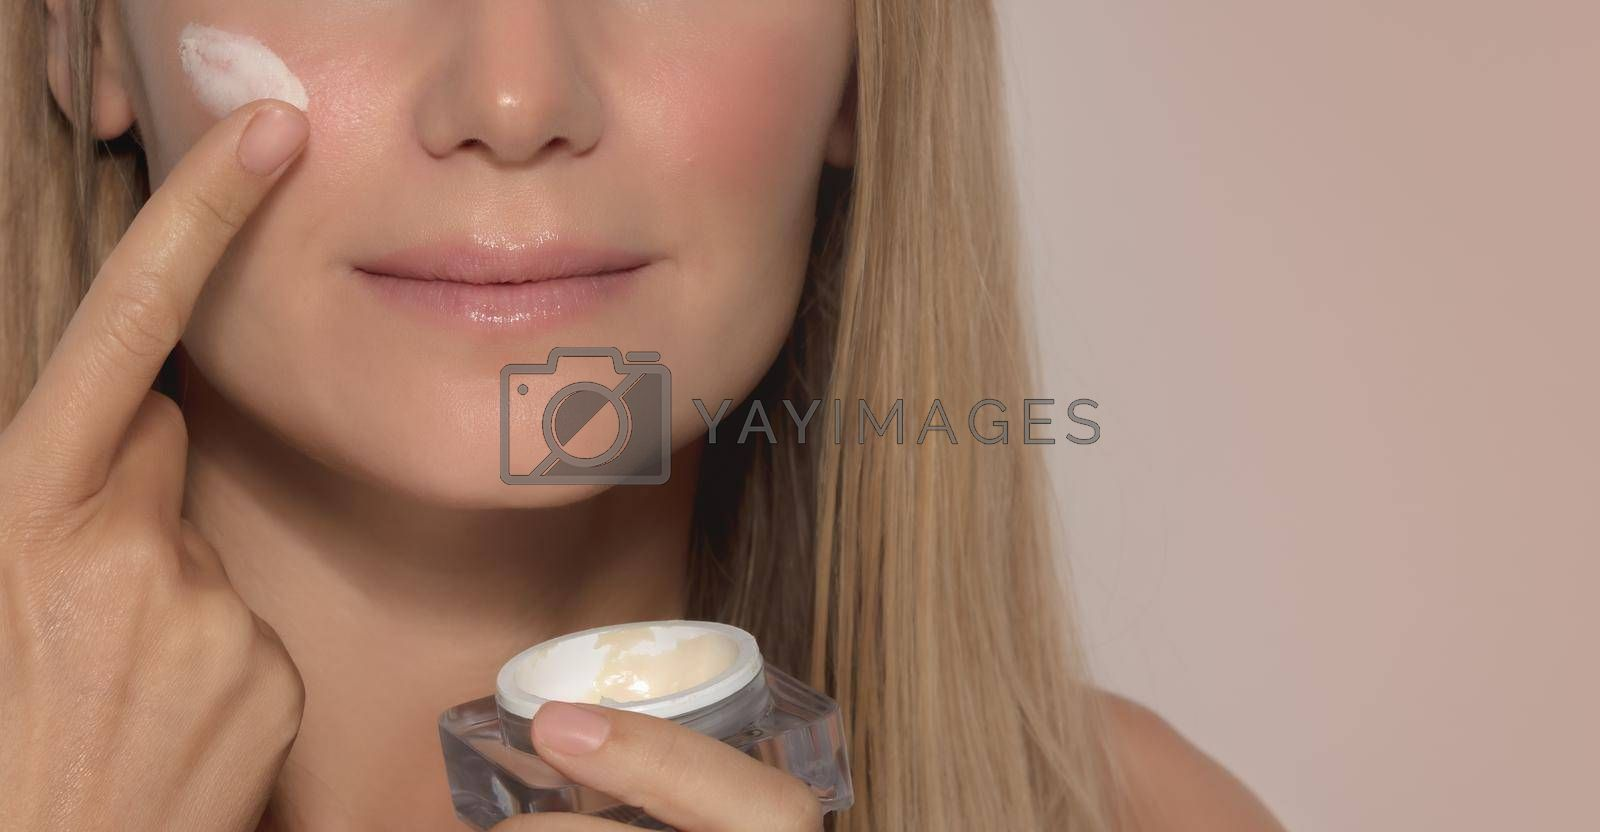 Portrait of a Nice Girl Applying Facial Moisturizer Cream Isolated on Beige Background. Face Part. Natural Cosmetics. Healthy Lifestyle. Beauty and Happiness Concept.